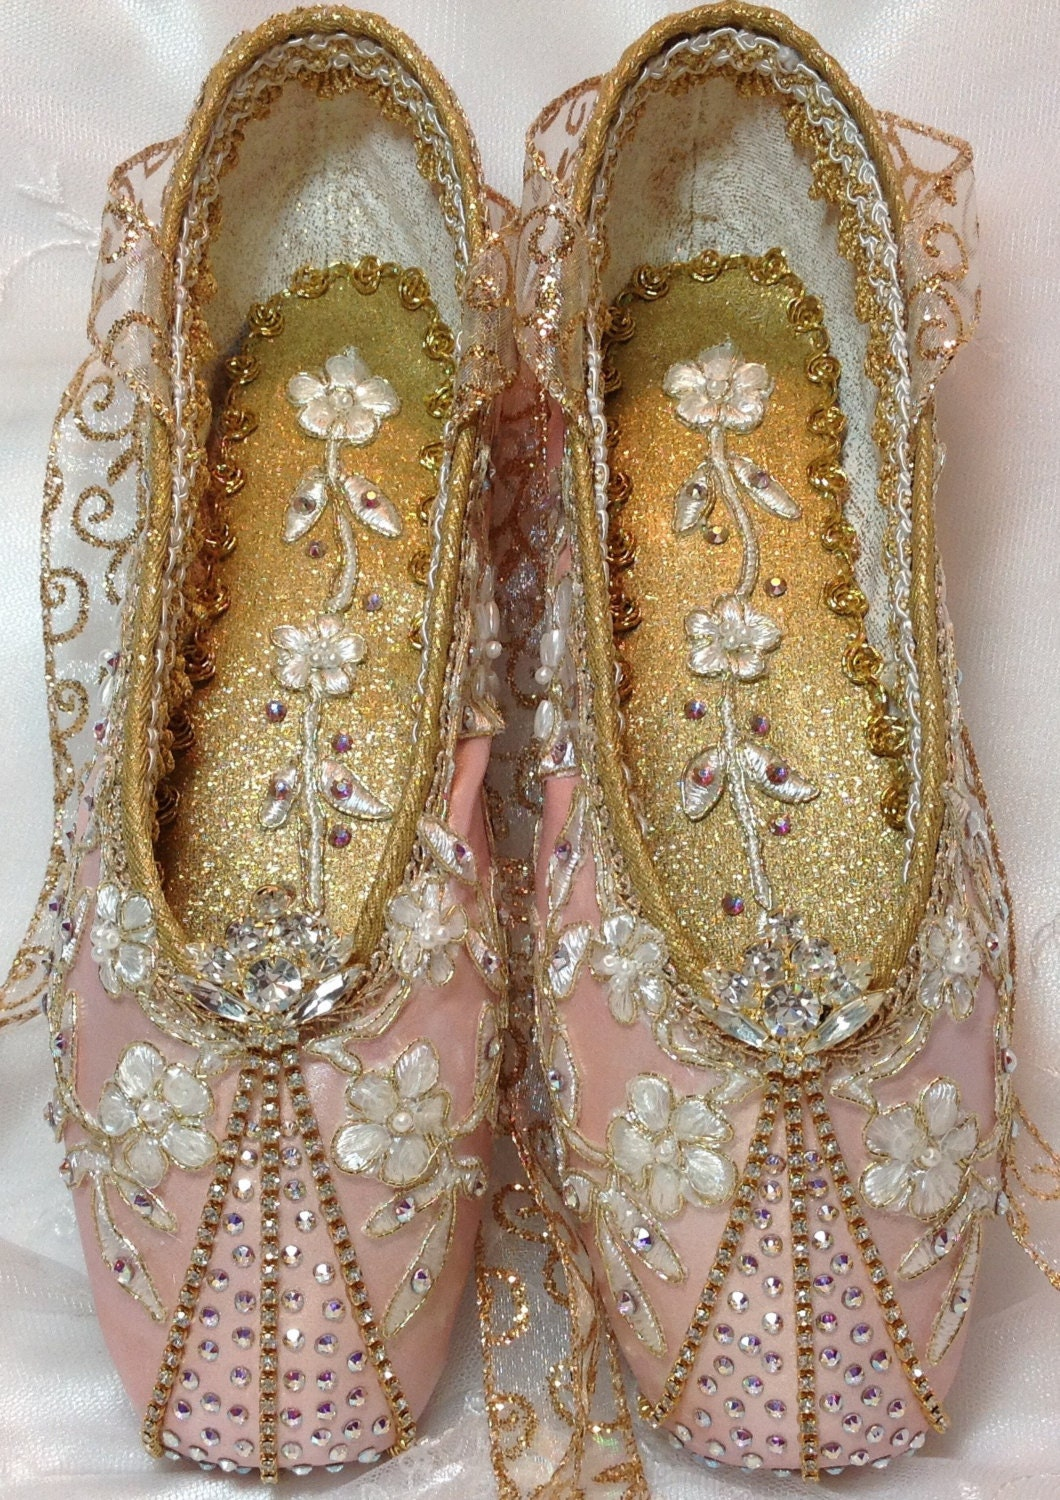 Exquisite Pair Of Pink And Gold Decorated Pointe Shoes With